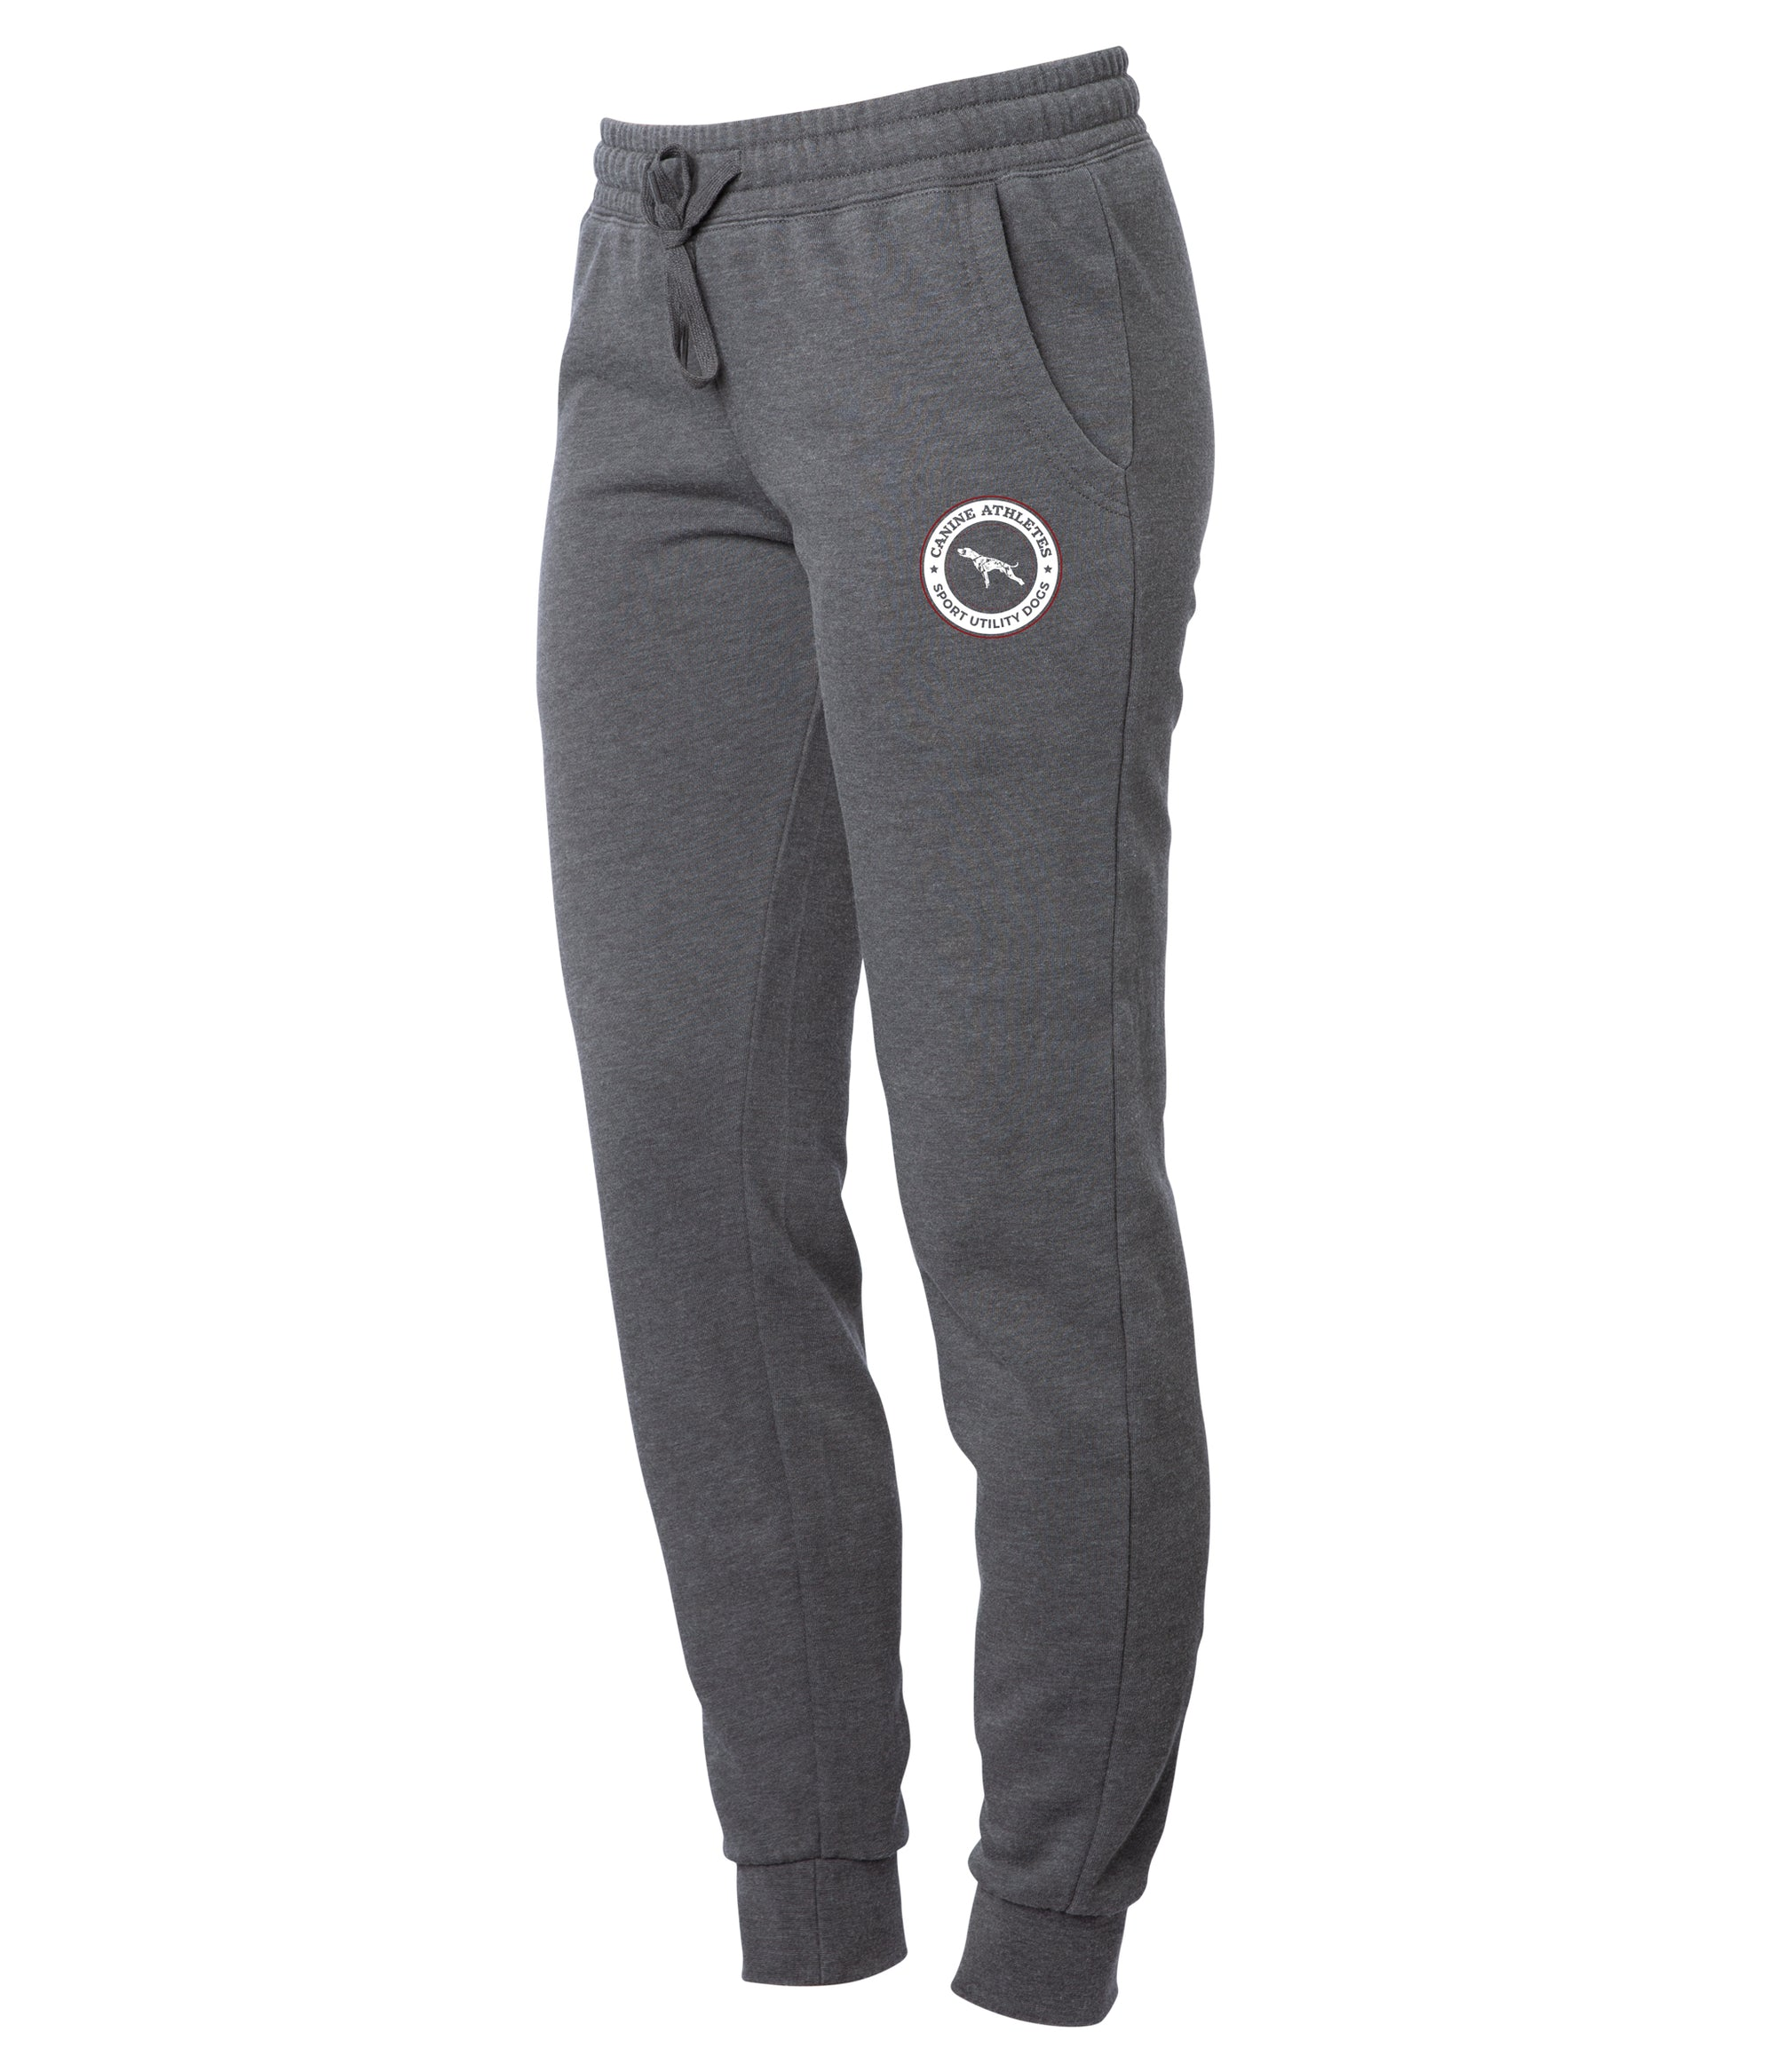 Canine Athletes Ladies Joggers